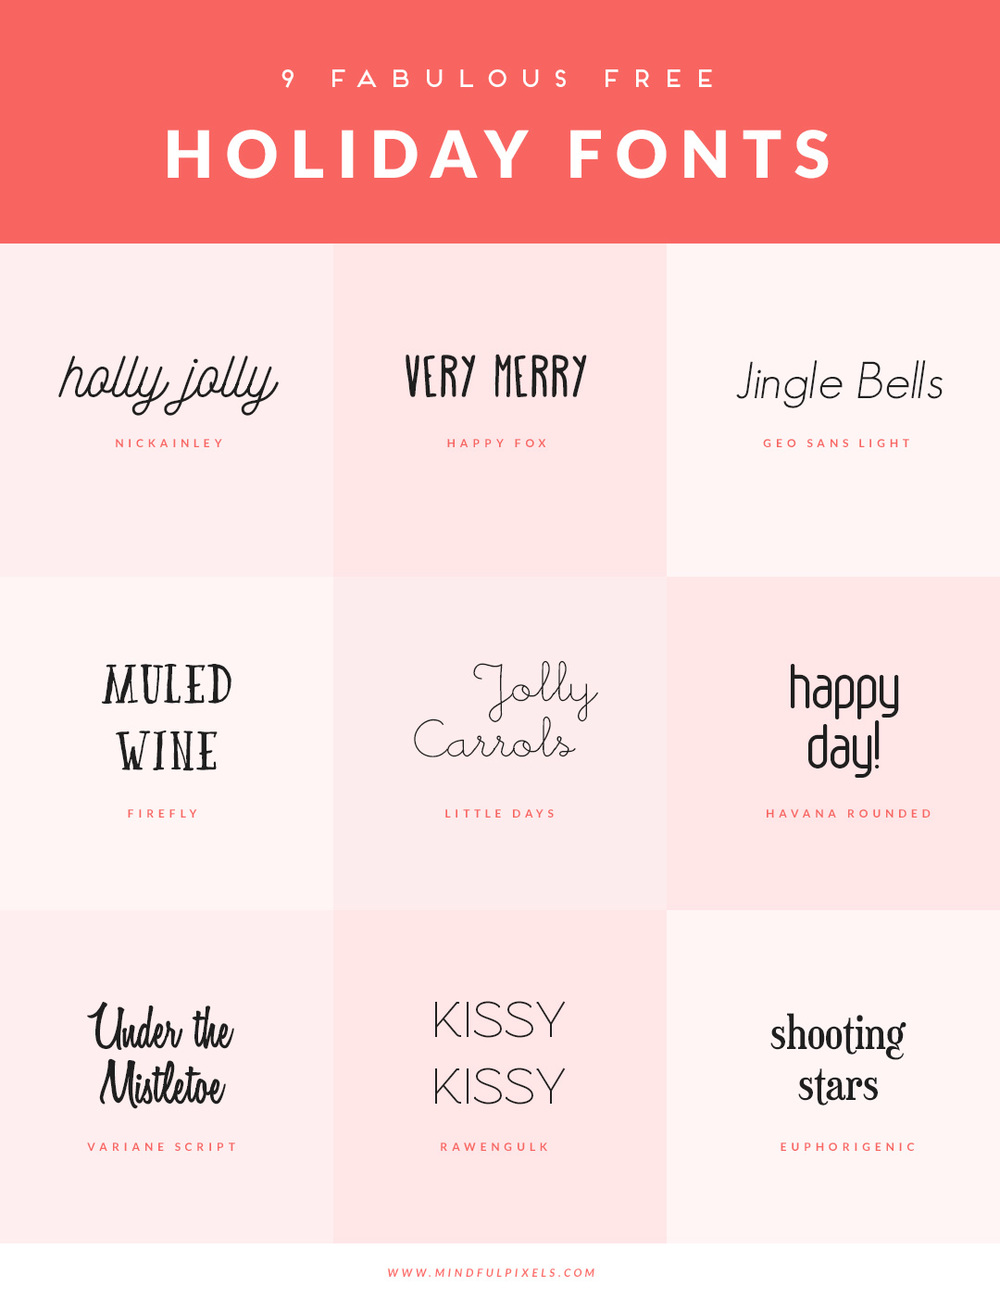 Fabulous-FREE-Fonts-for-the-Holidays-2015.jpg